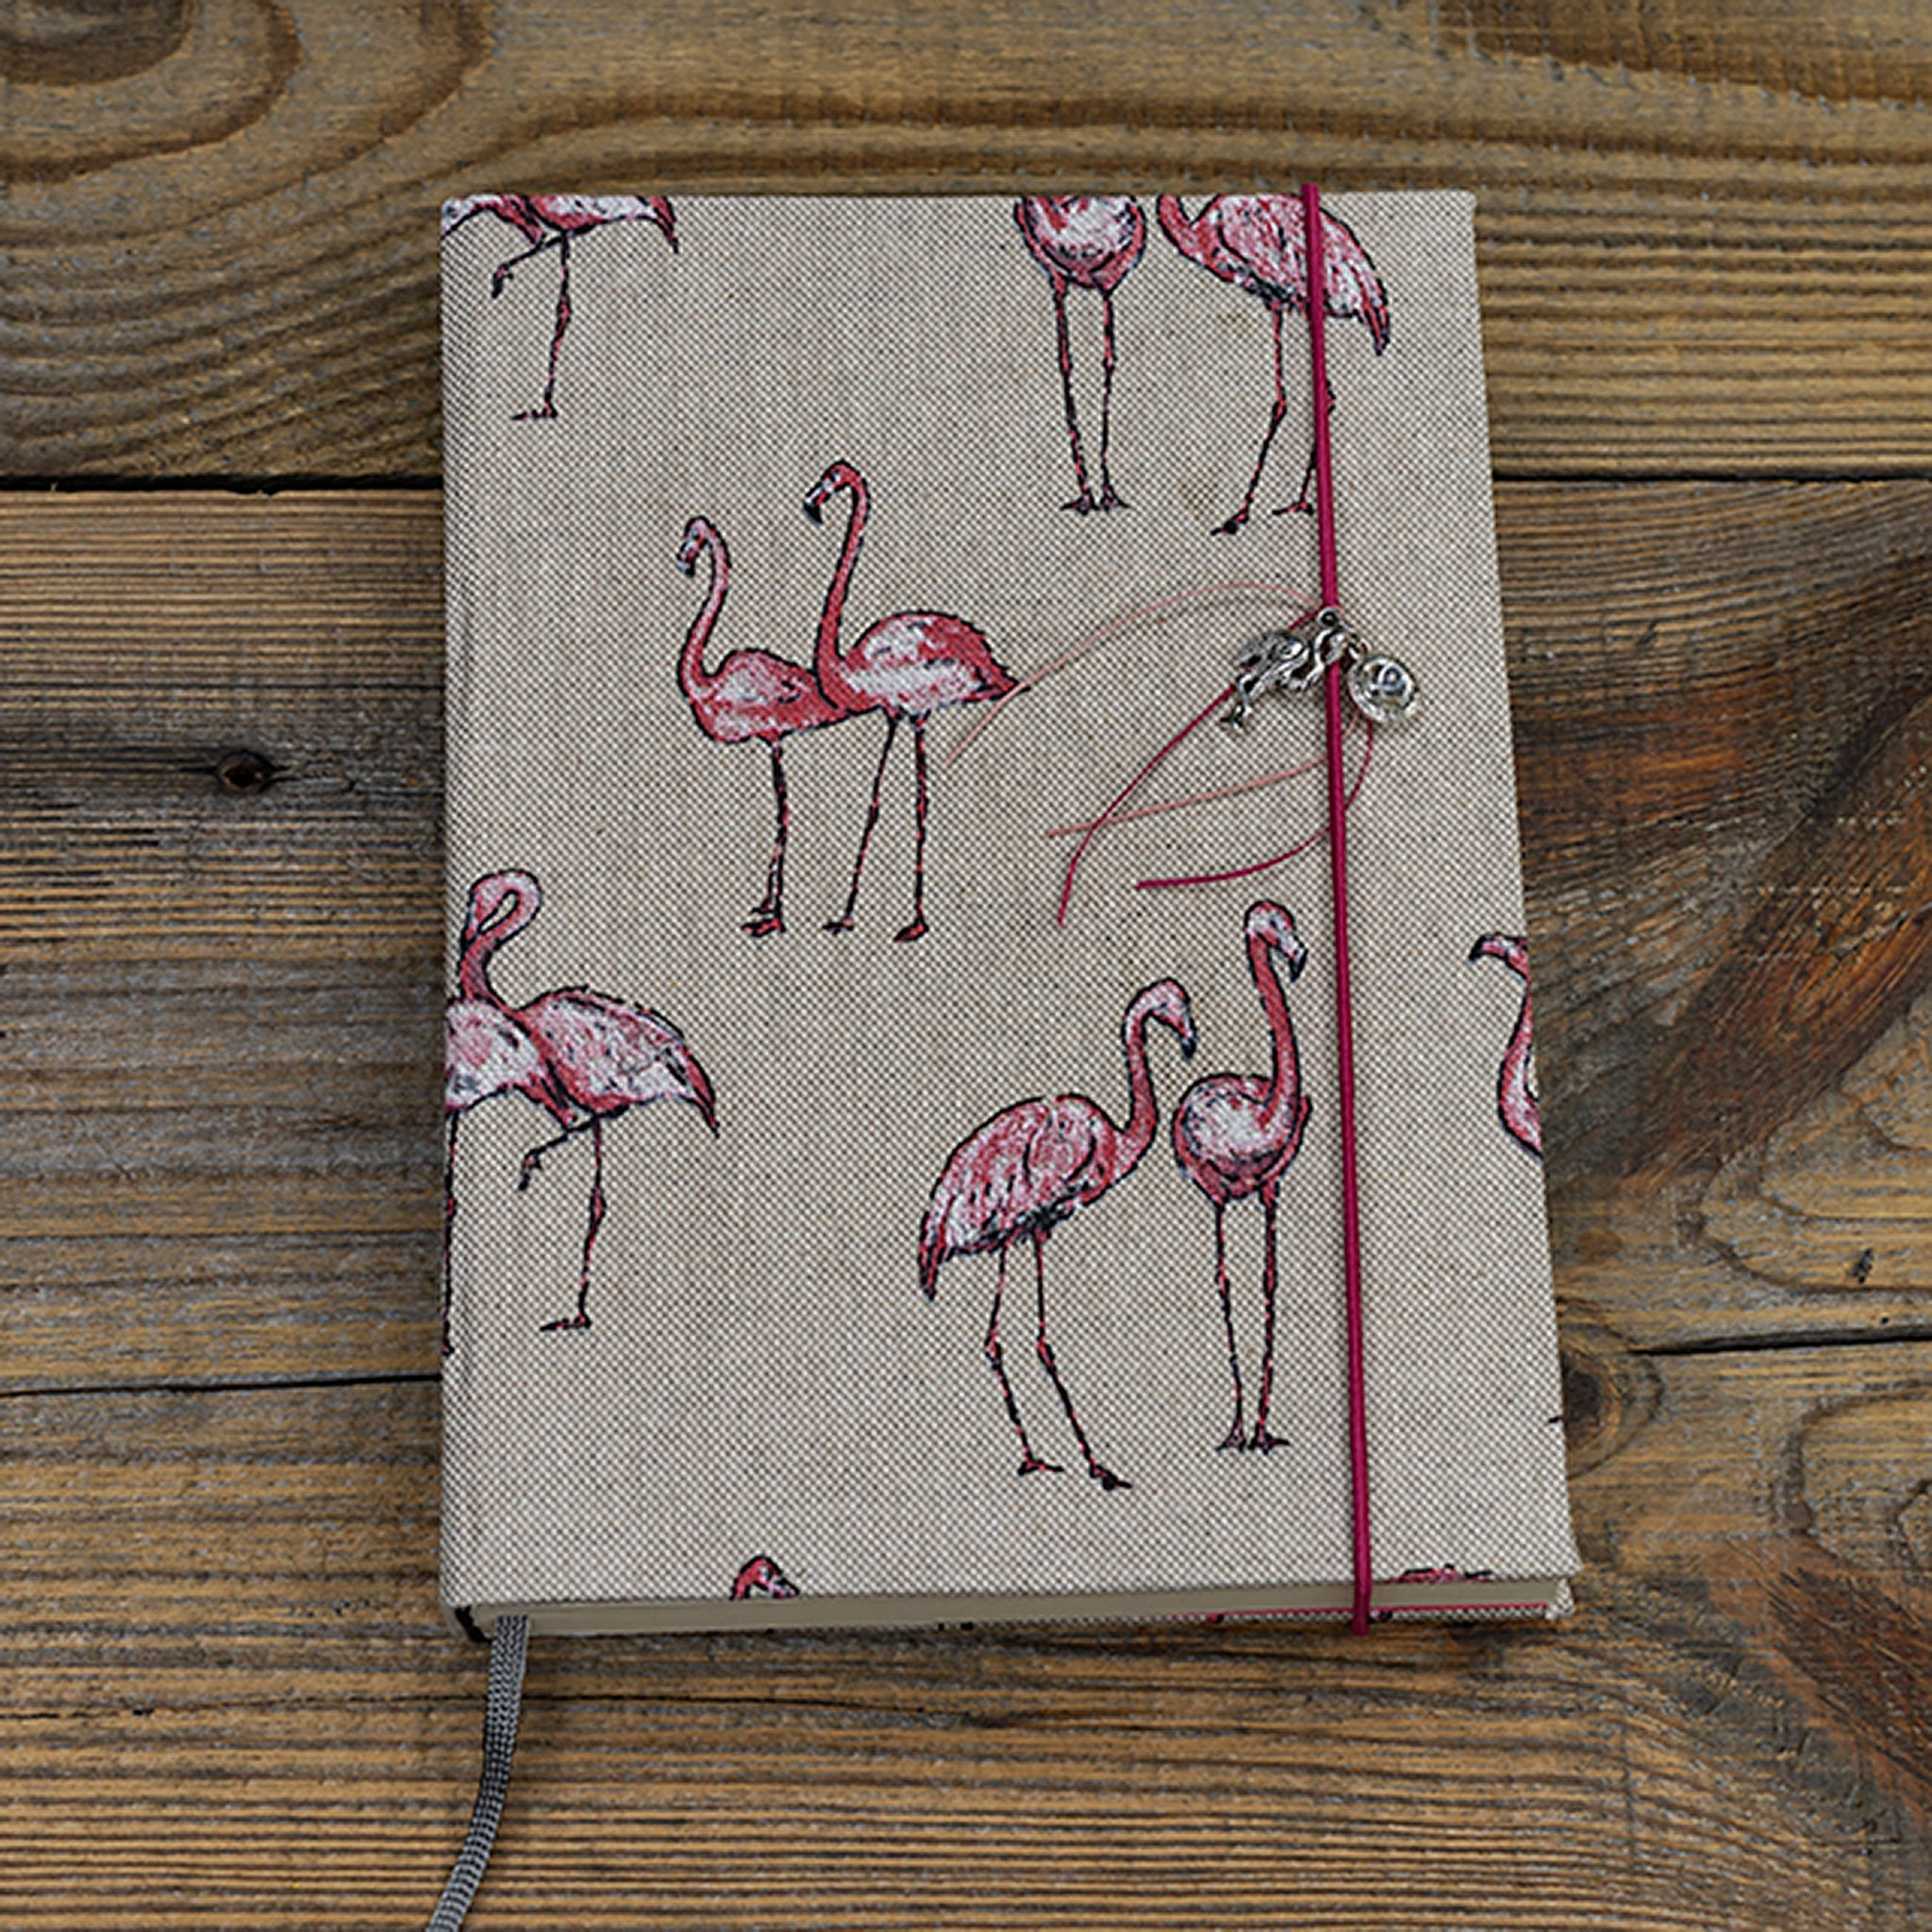 Notizbuch - Flamingo A5